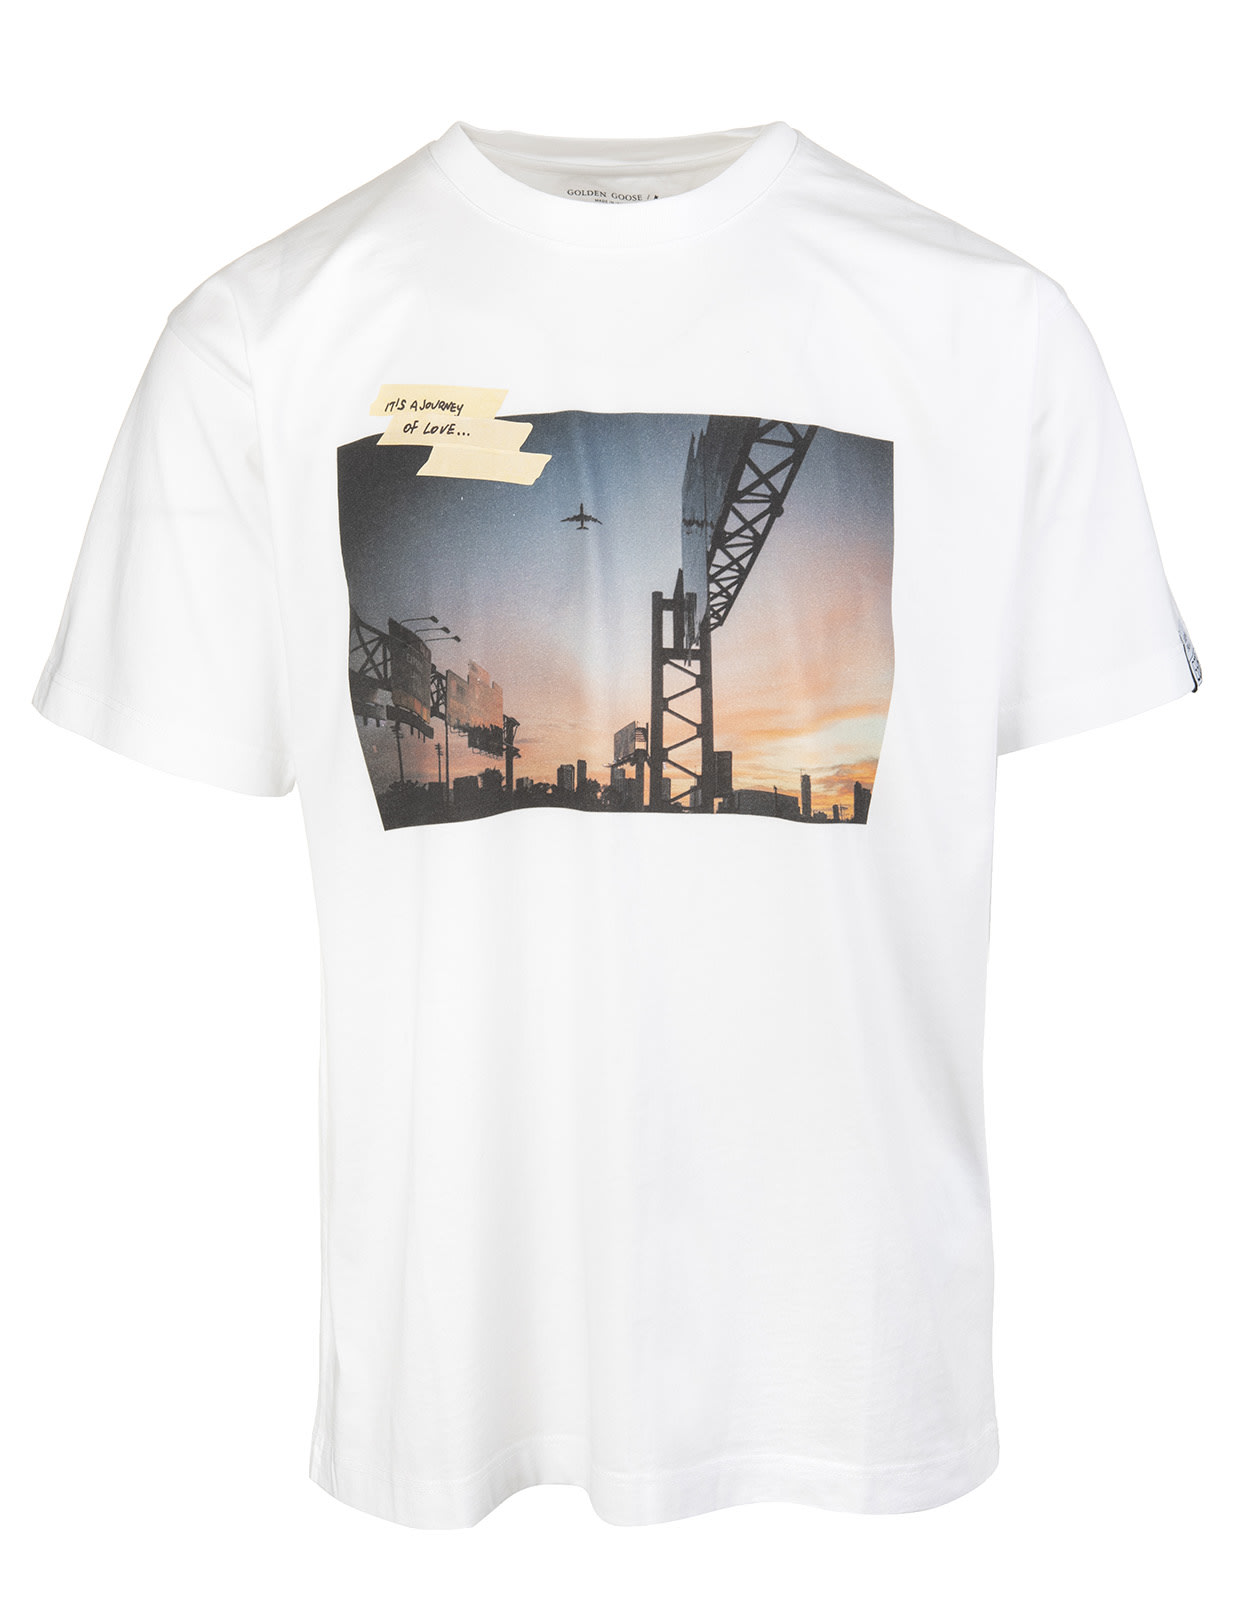 Golden Goose Man Artu White T-shirt Dream Maker Collection With Print